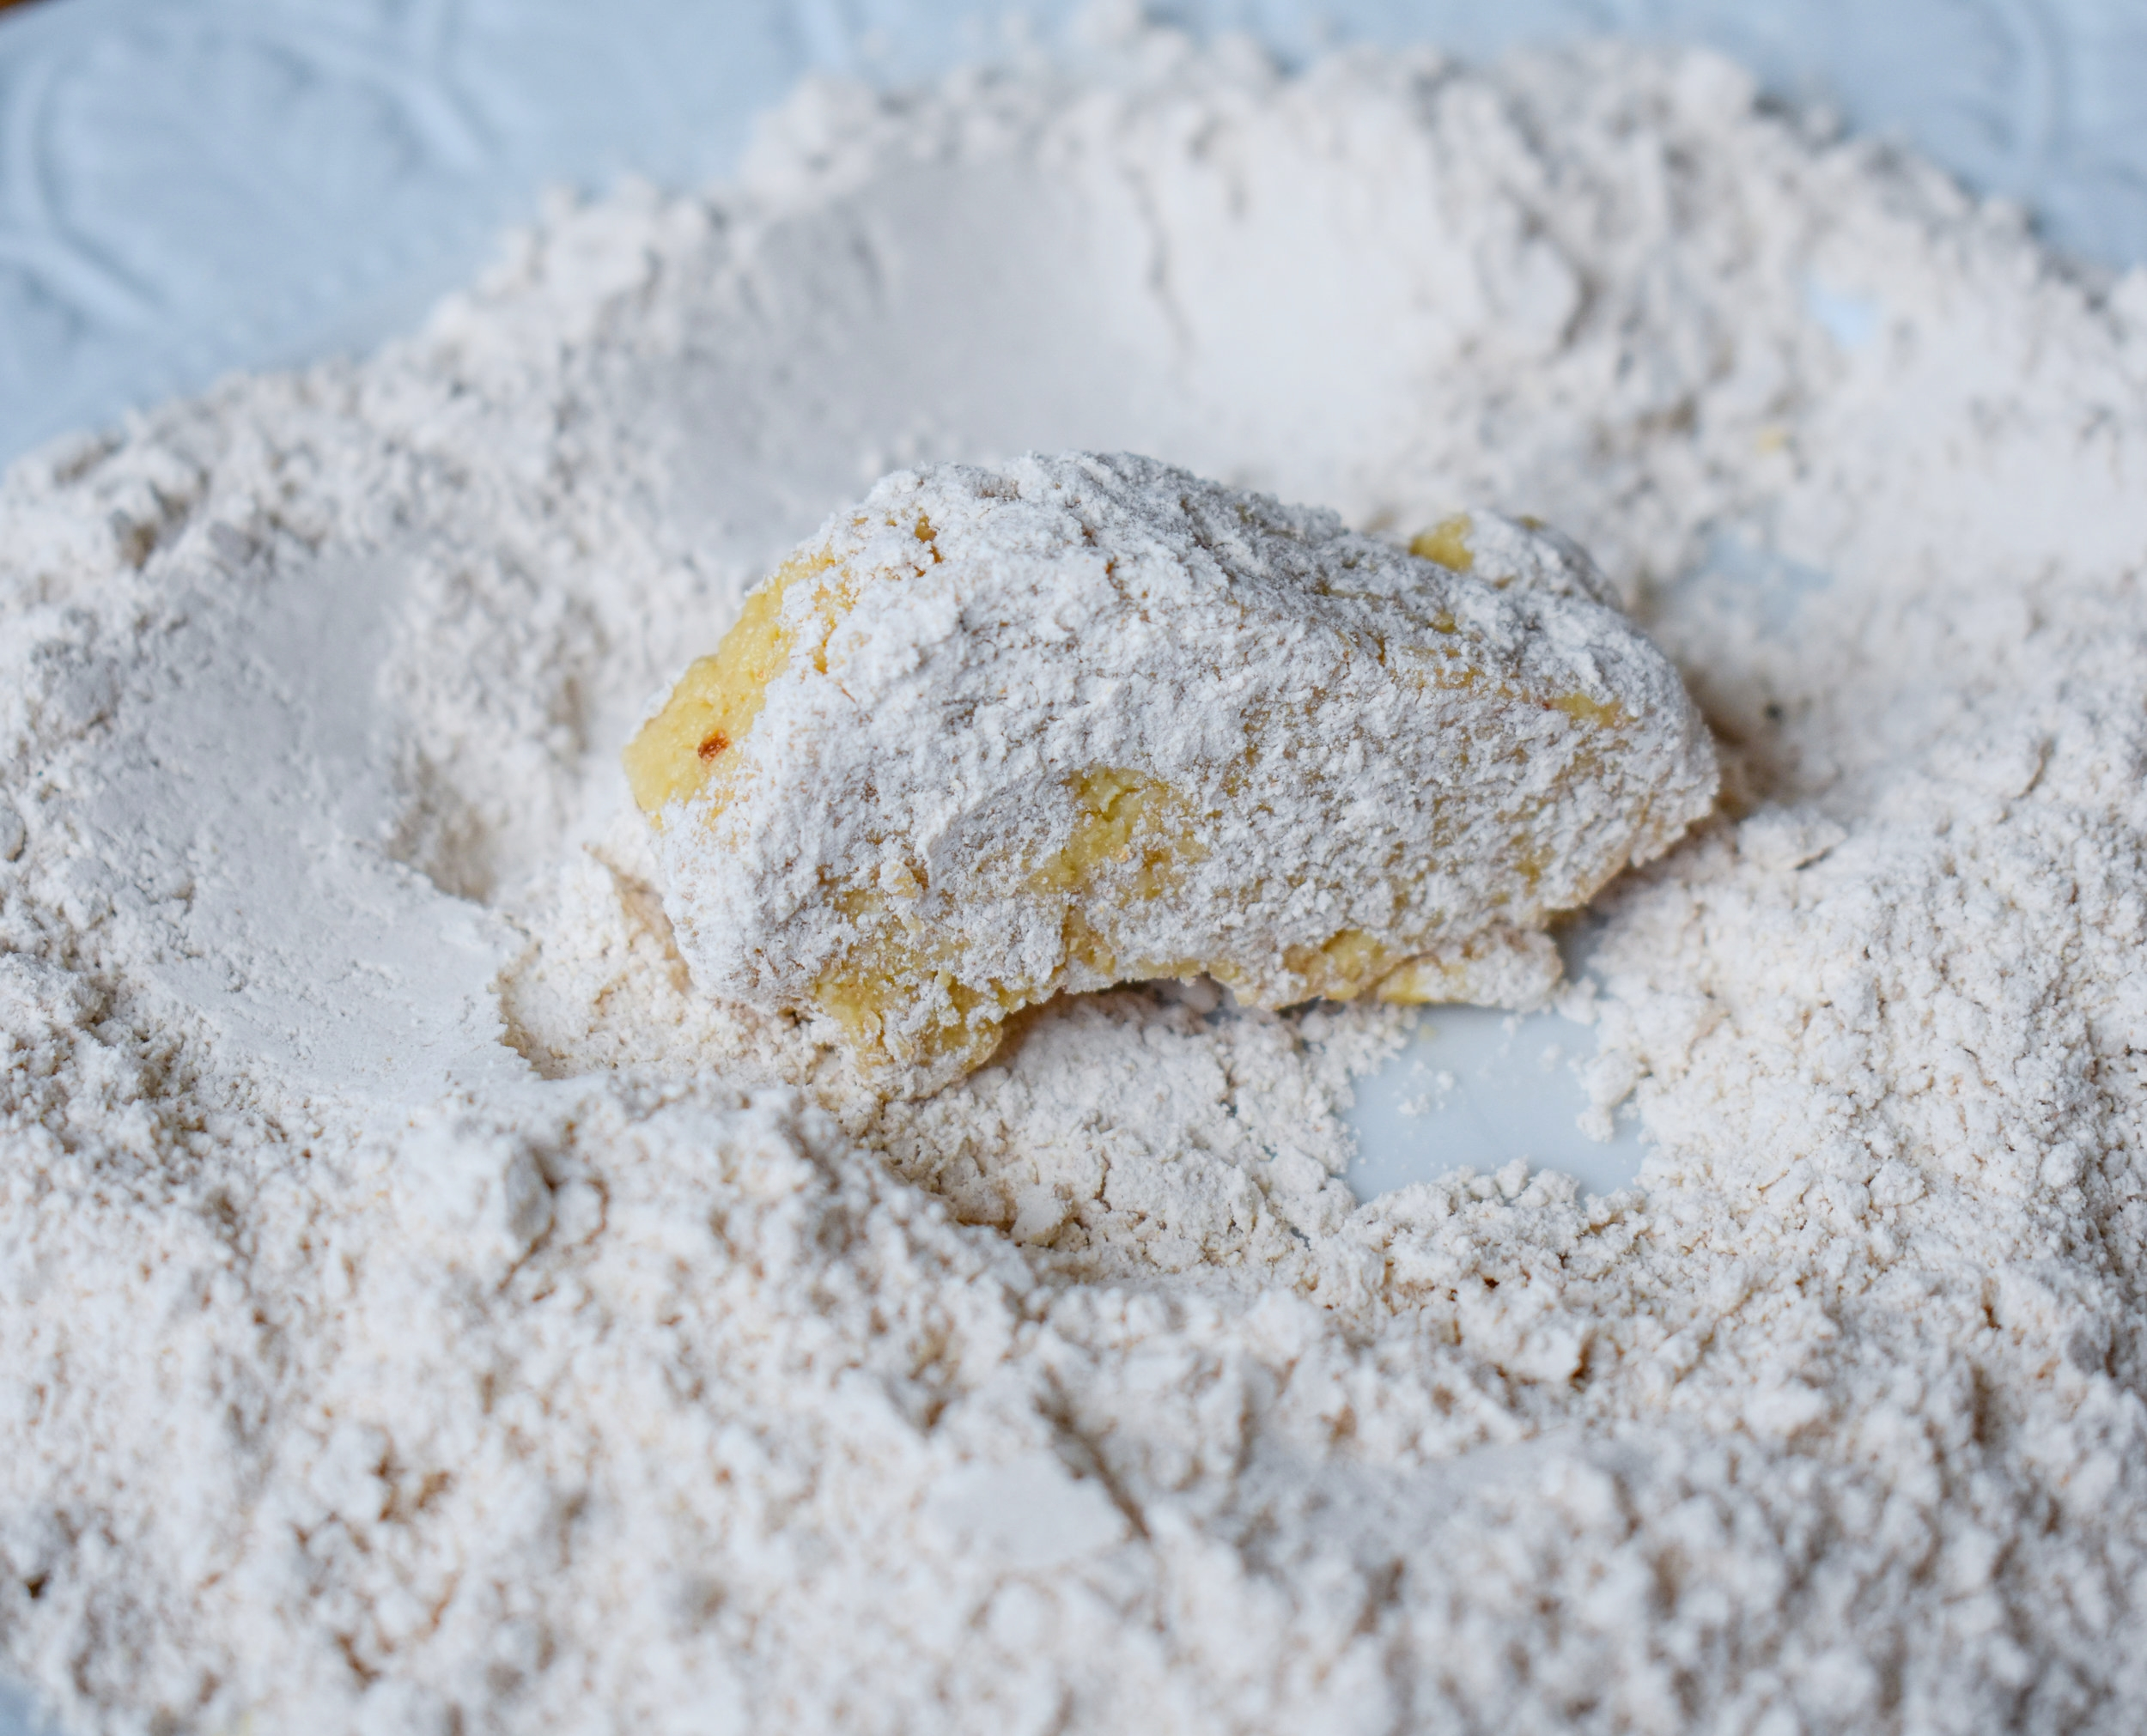 7. To bread, first place sticks into flour quickly to coat.